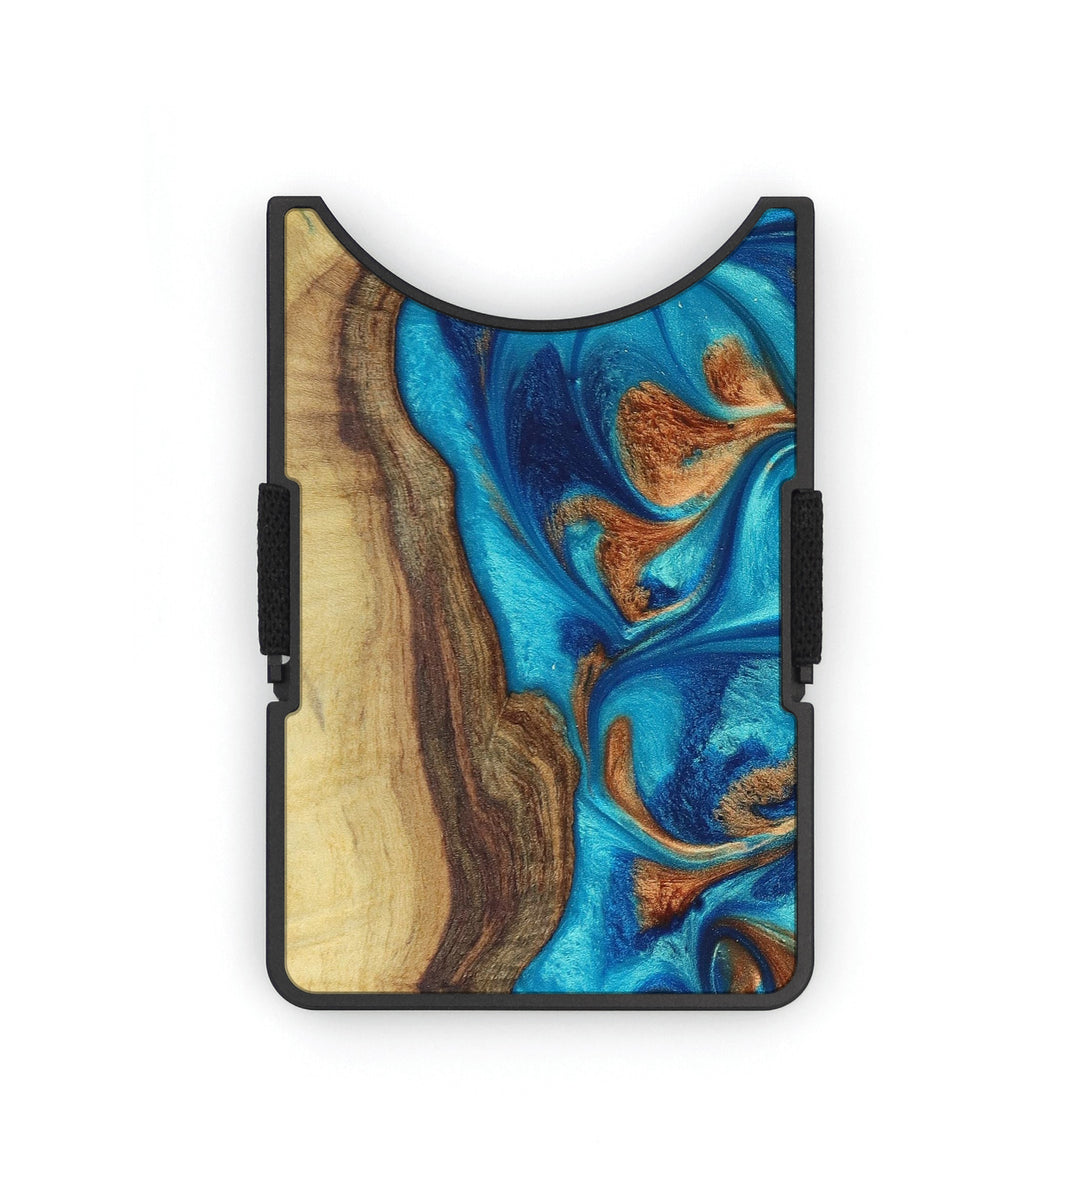 Alloy Wood+Resin Wallet - Warden (Teal & Gold, 394903)